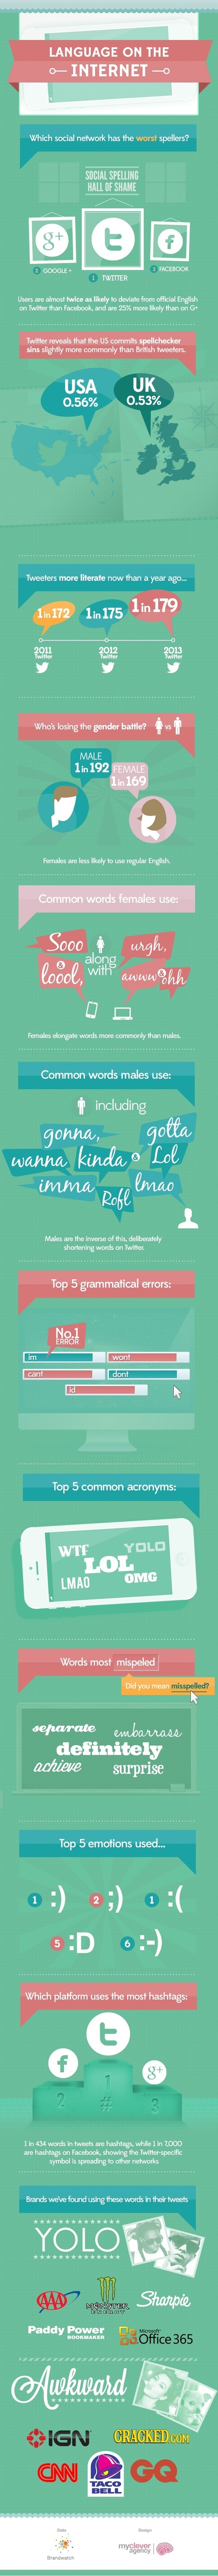 OMG! Illiterate Twitter Users Are Driving English Language Evolution, Says Study [INFOGRAPHIC] | MarketingHits | Scoop.it